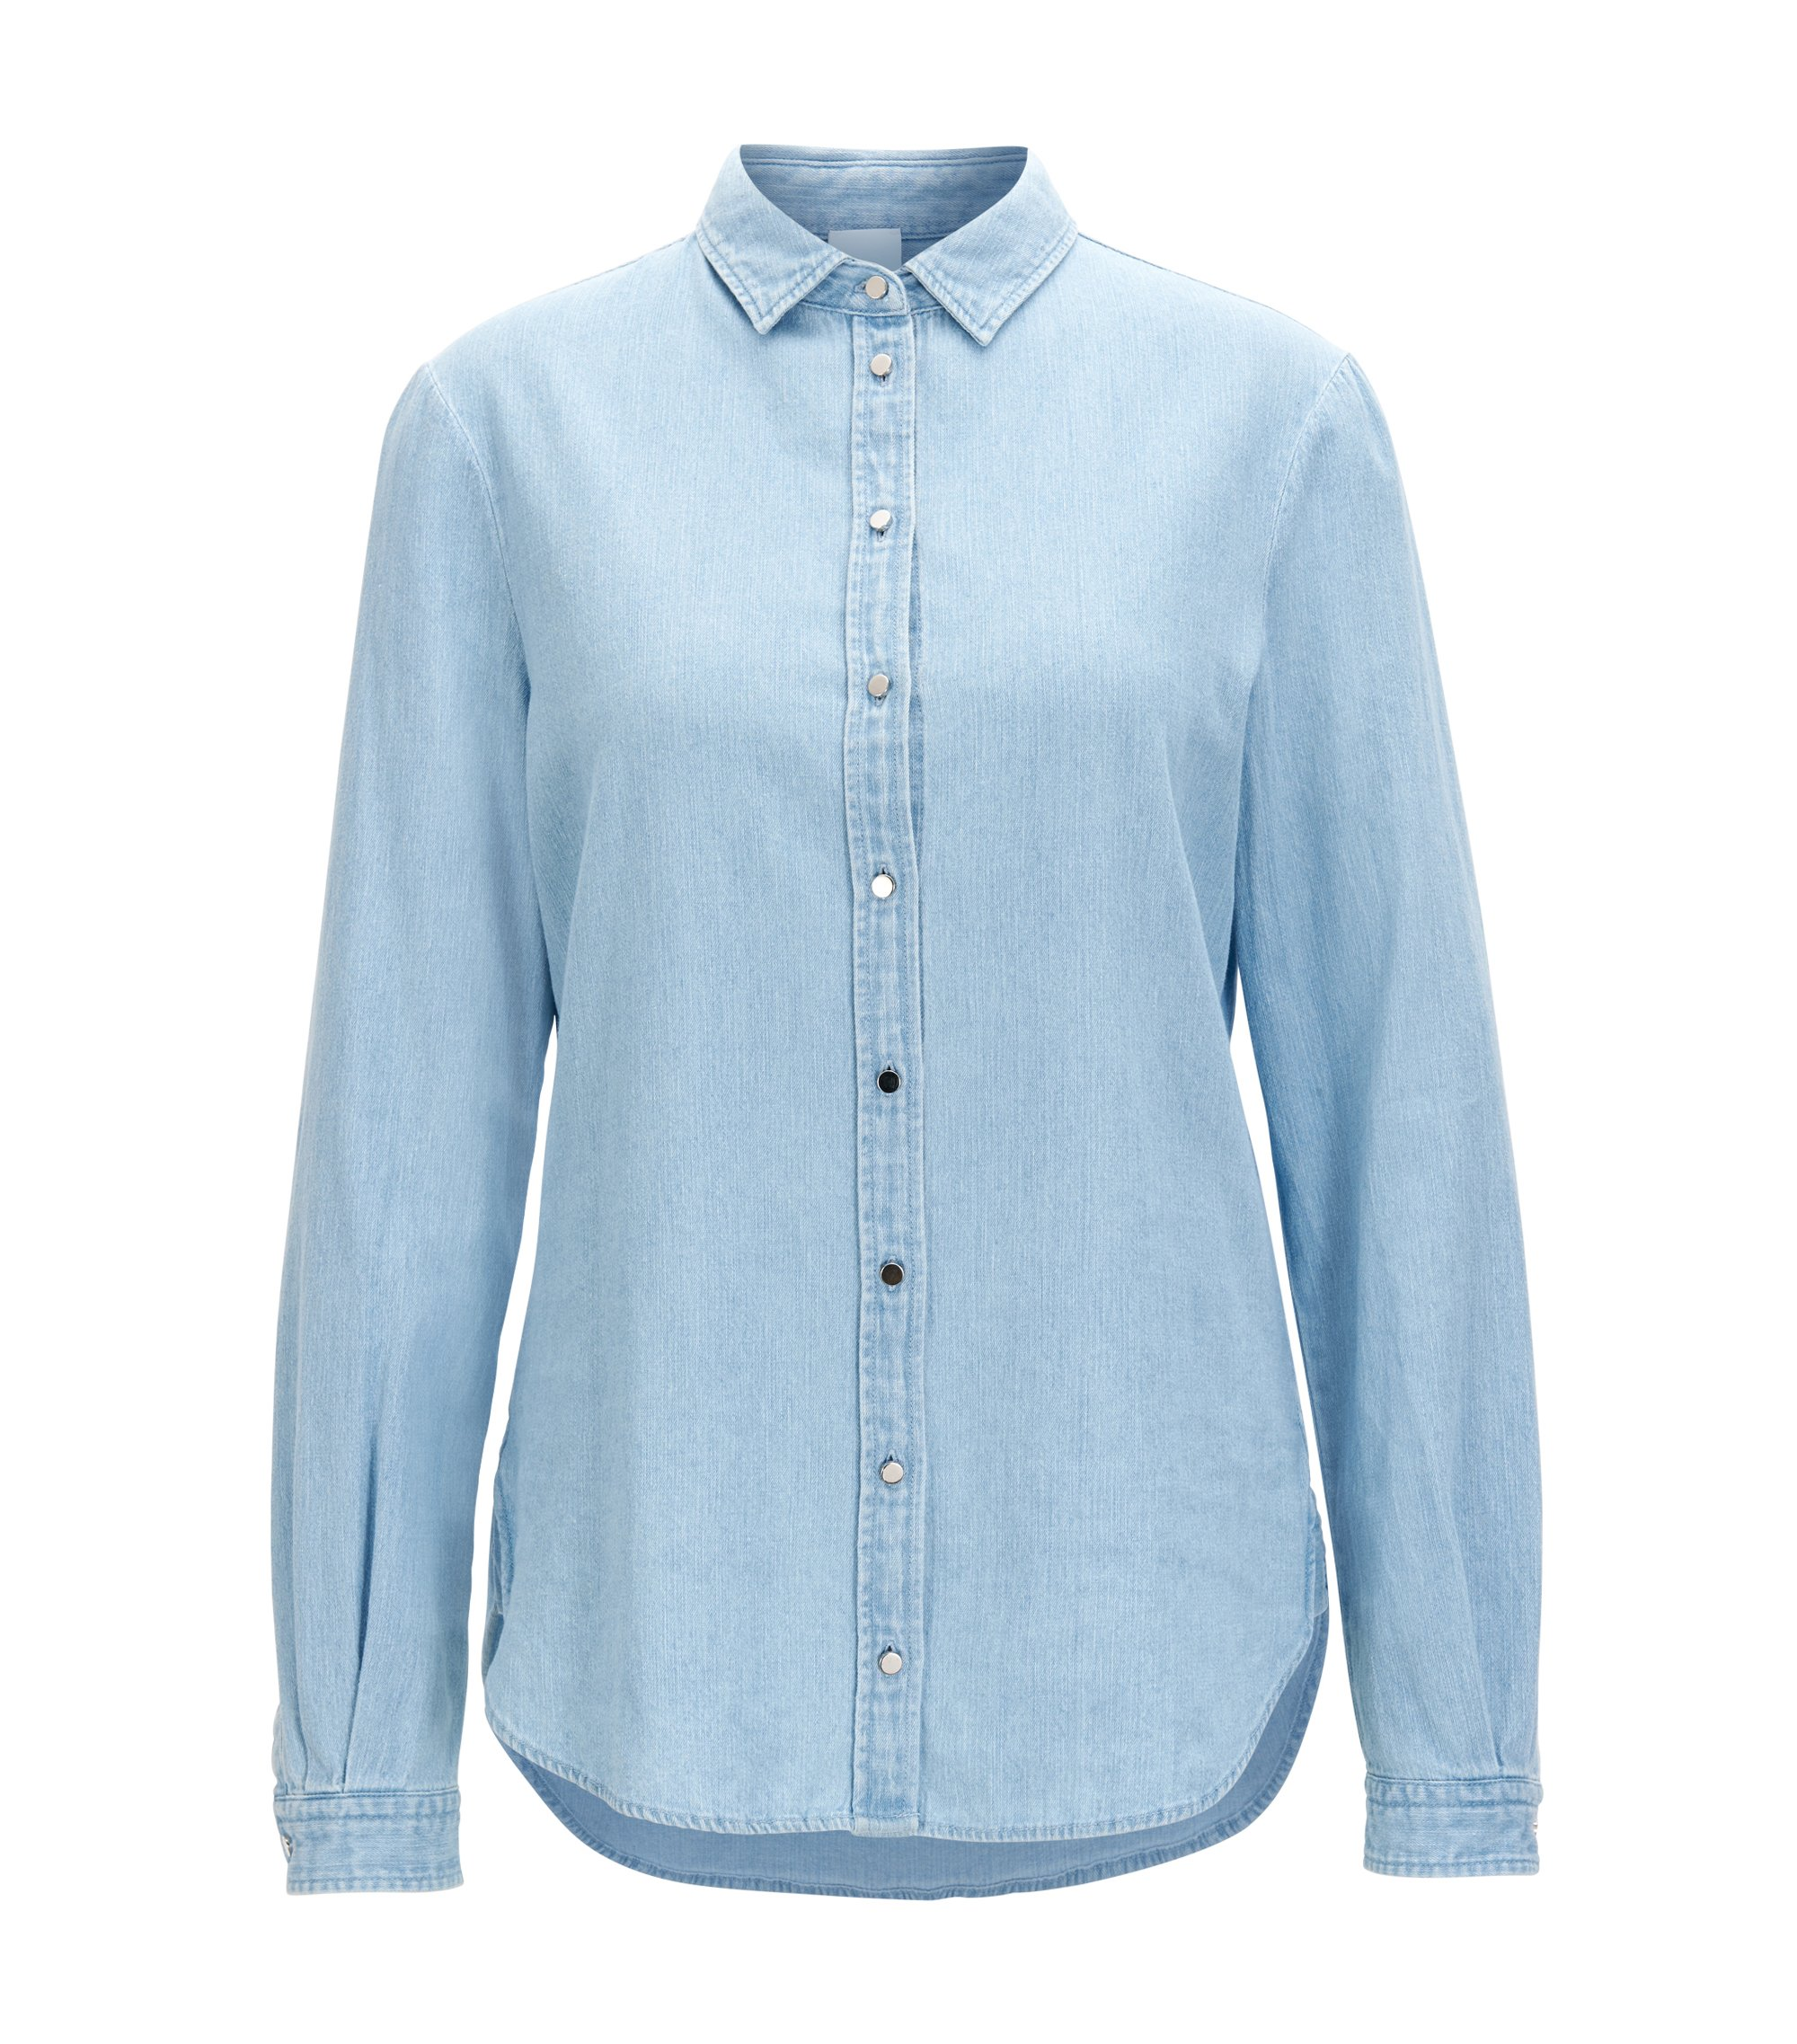 Regular-fit denimblouse met bleekwassing, Lichtblauw